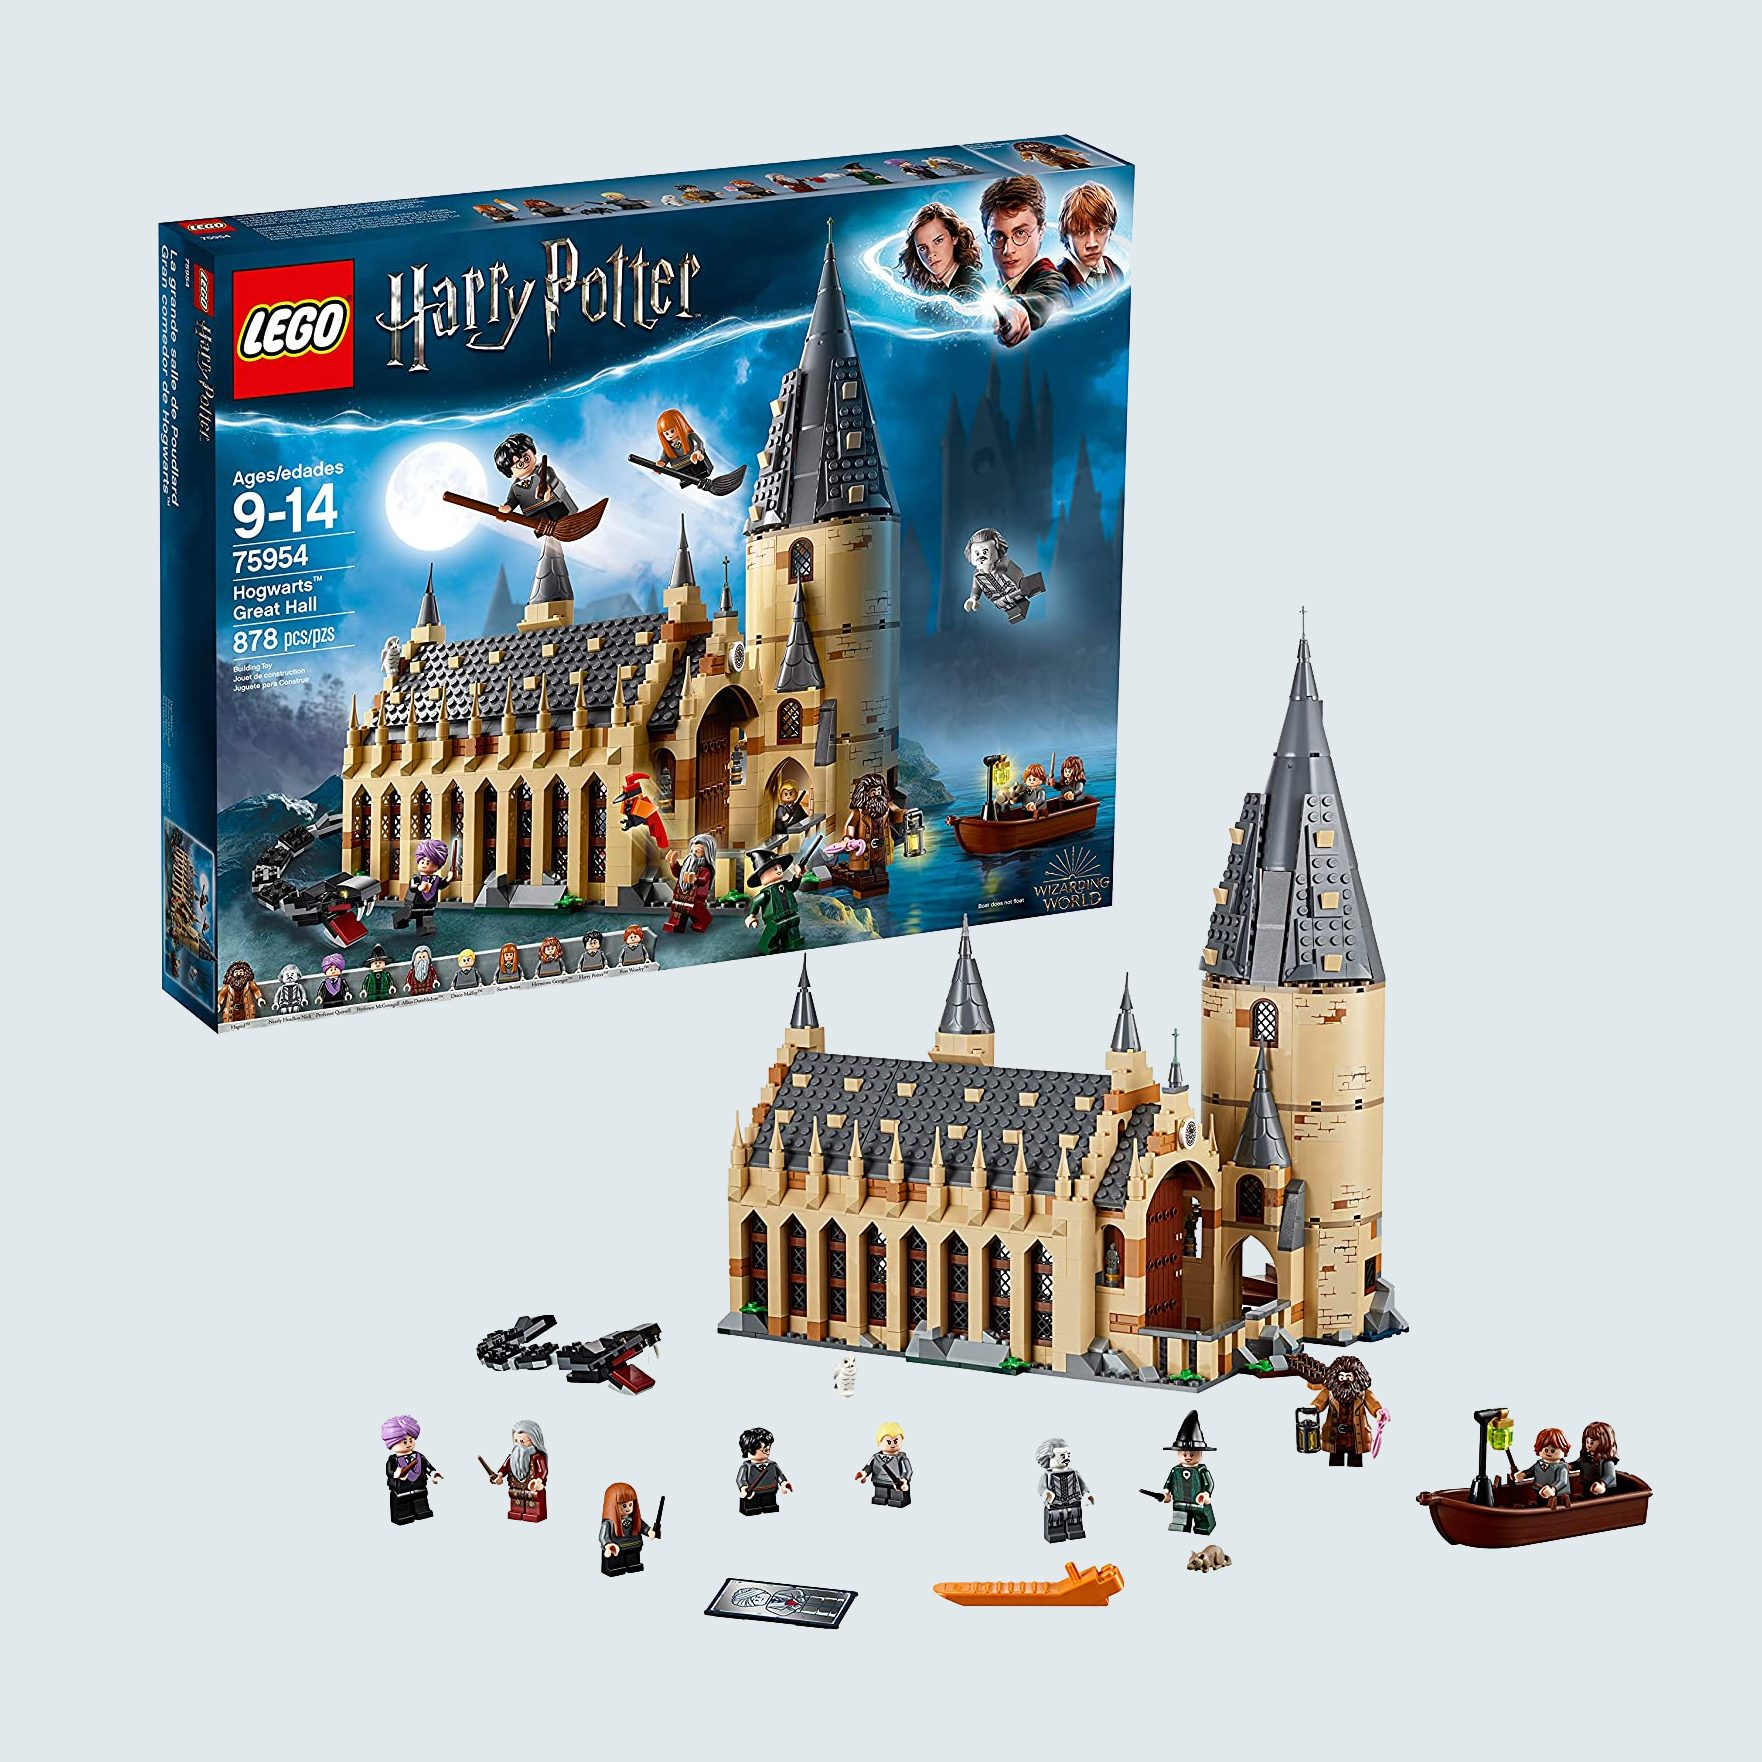 LEGO Harry Potter Hogwarts Great Hall Kit